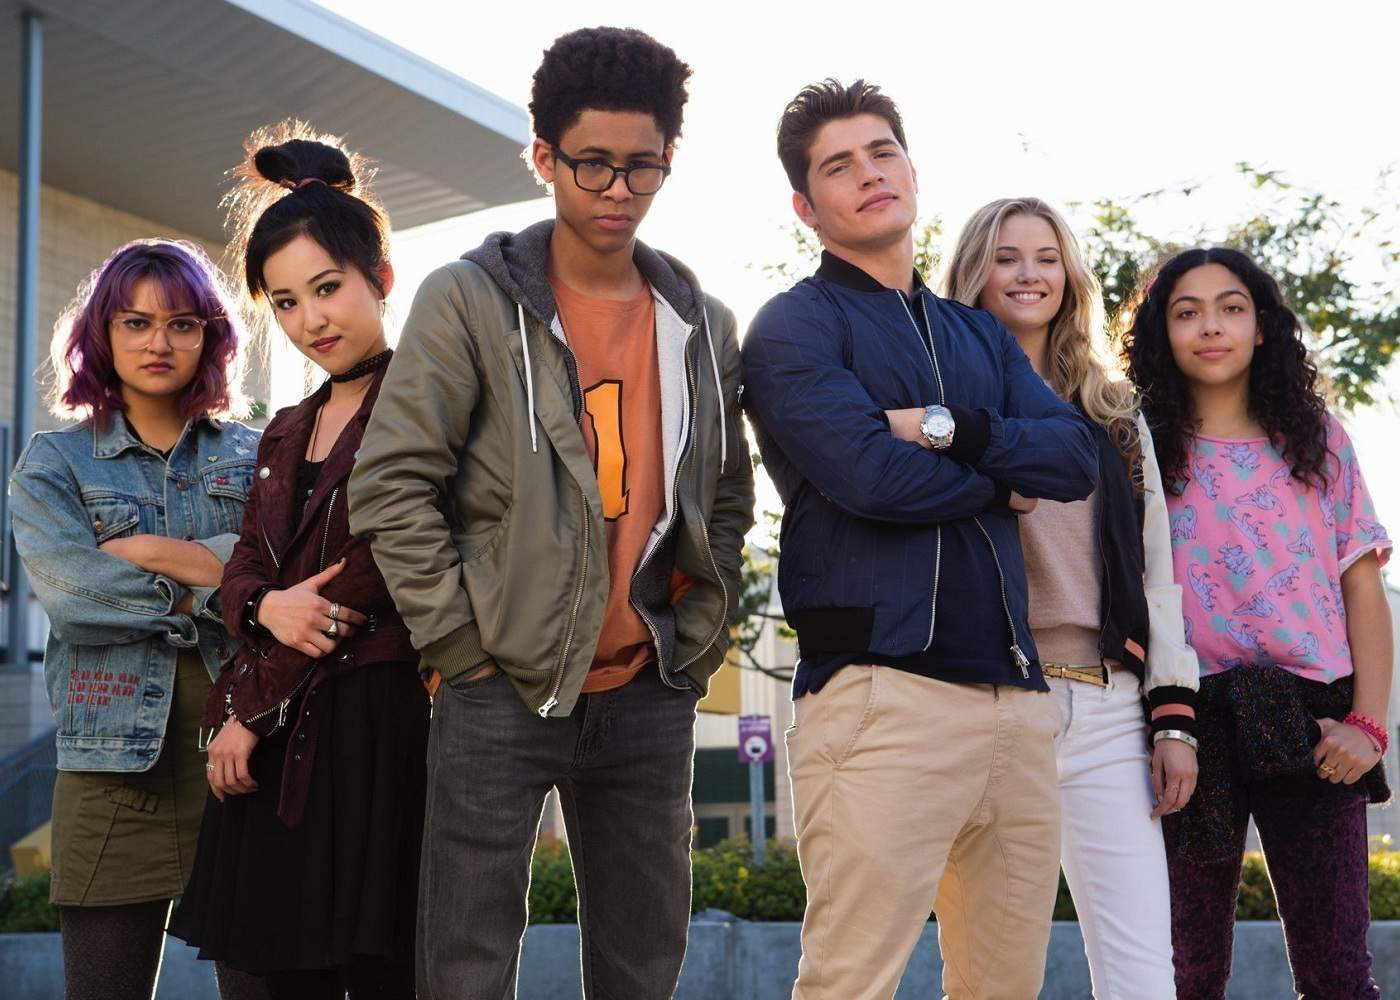 The Kids Are Alright in Runaways Trailer